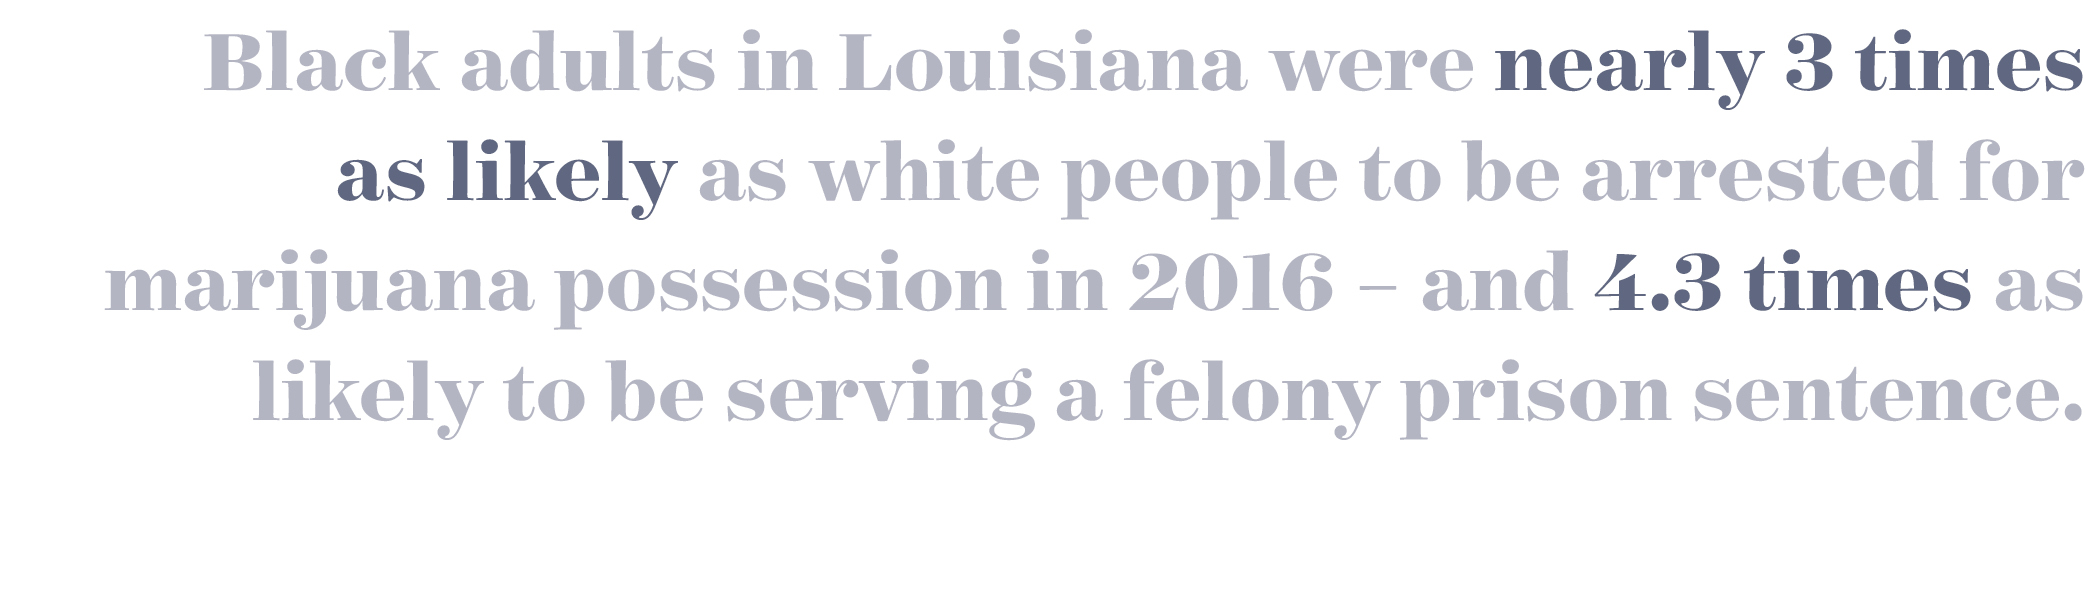 Racial Profiling in Louisiana: Unconstitutional and